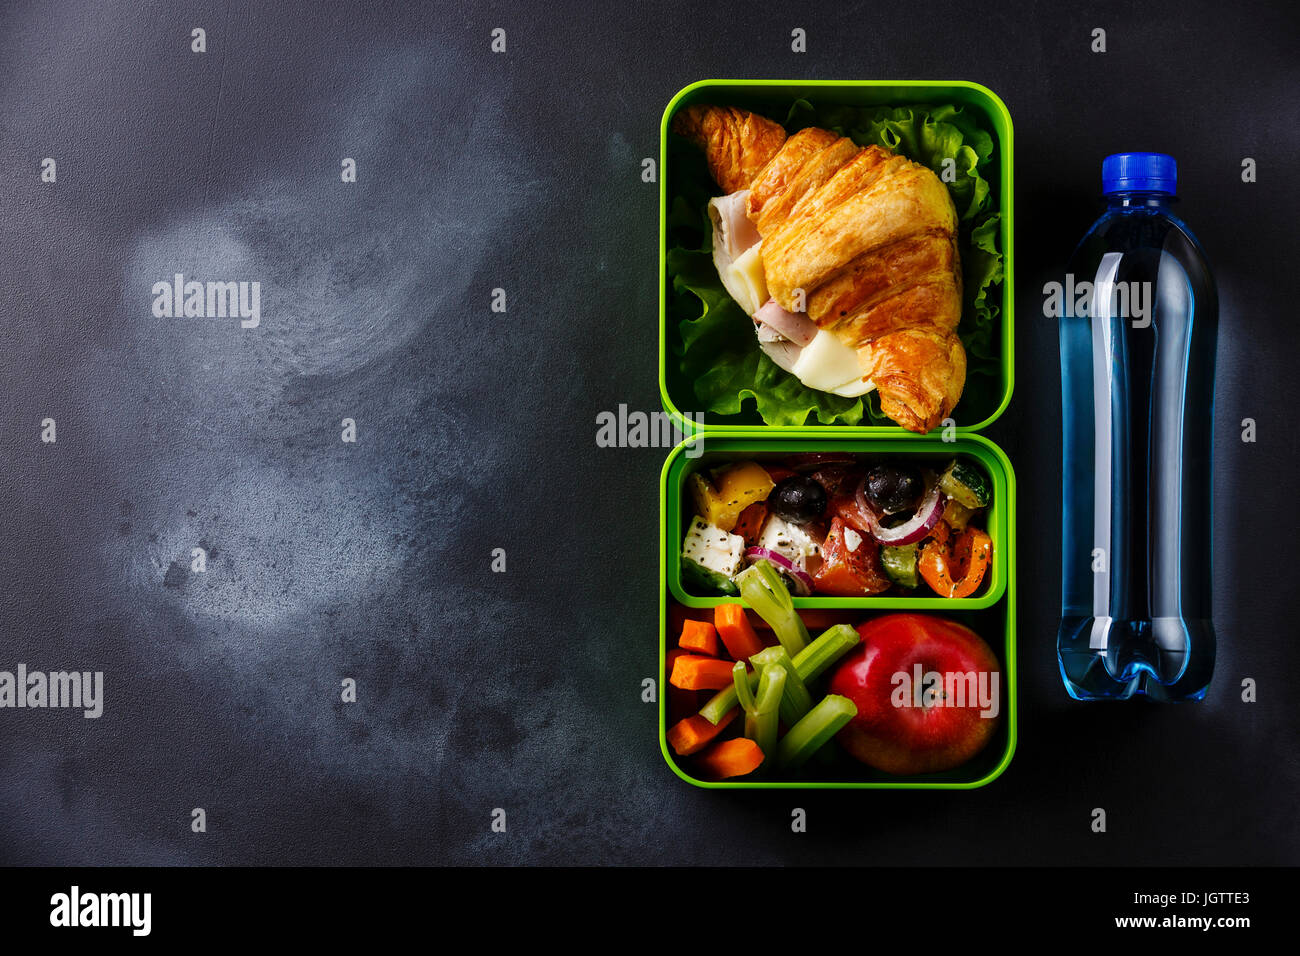 Take out food Lunch box with Croissant sandwich, Greek salad and vegetables with bottle of water on blackboard background - Stock Image